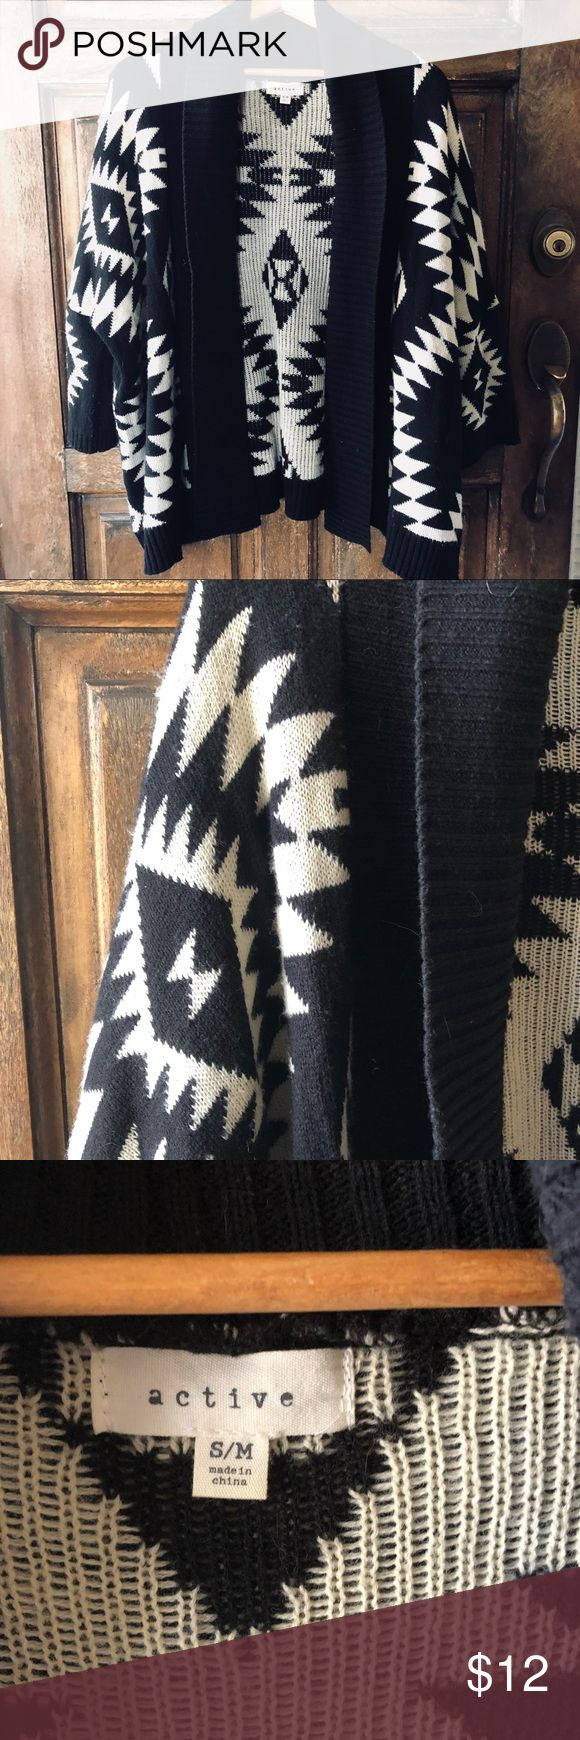 """Aztec Print Cardigan Perfect cozy sweater for spring and summer nights! Great neutral colors that go with a variety of colors! Market size small/medium but has an oversized fit. Cardigan is 29"""" in length and has 3/4 or 7/8 length sleeves (depending on arm length). Material is 100% acrylic. active Sweaters Cardigans"""